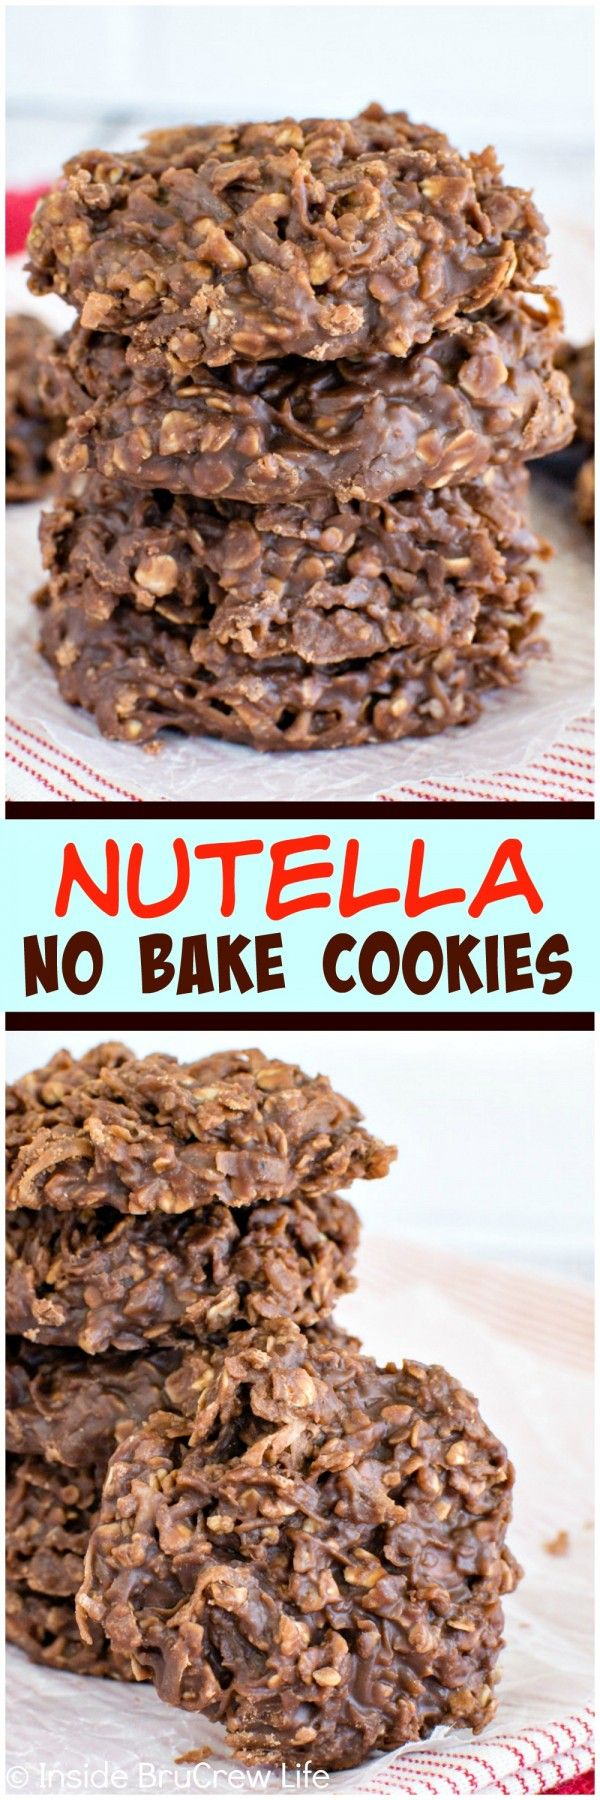 Nutella No Bake Cookies - these easy cookies are loaded with coconut, oats, and…